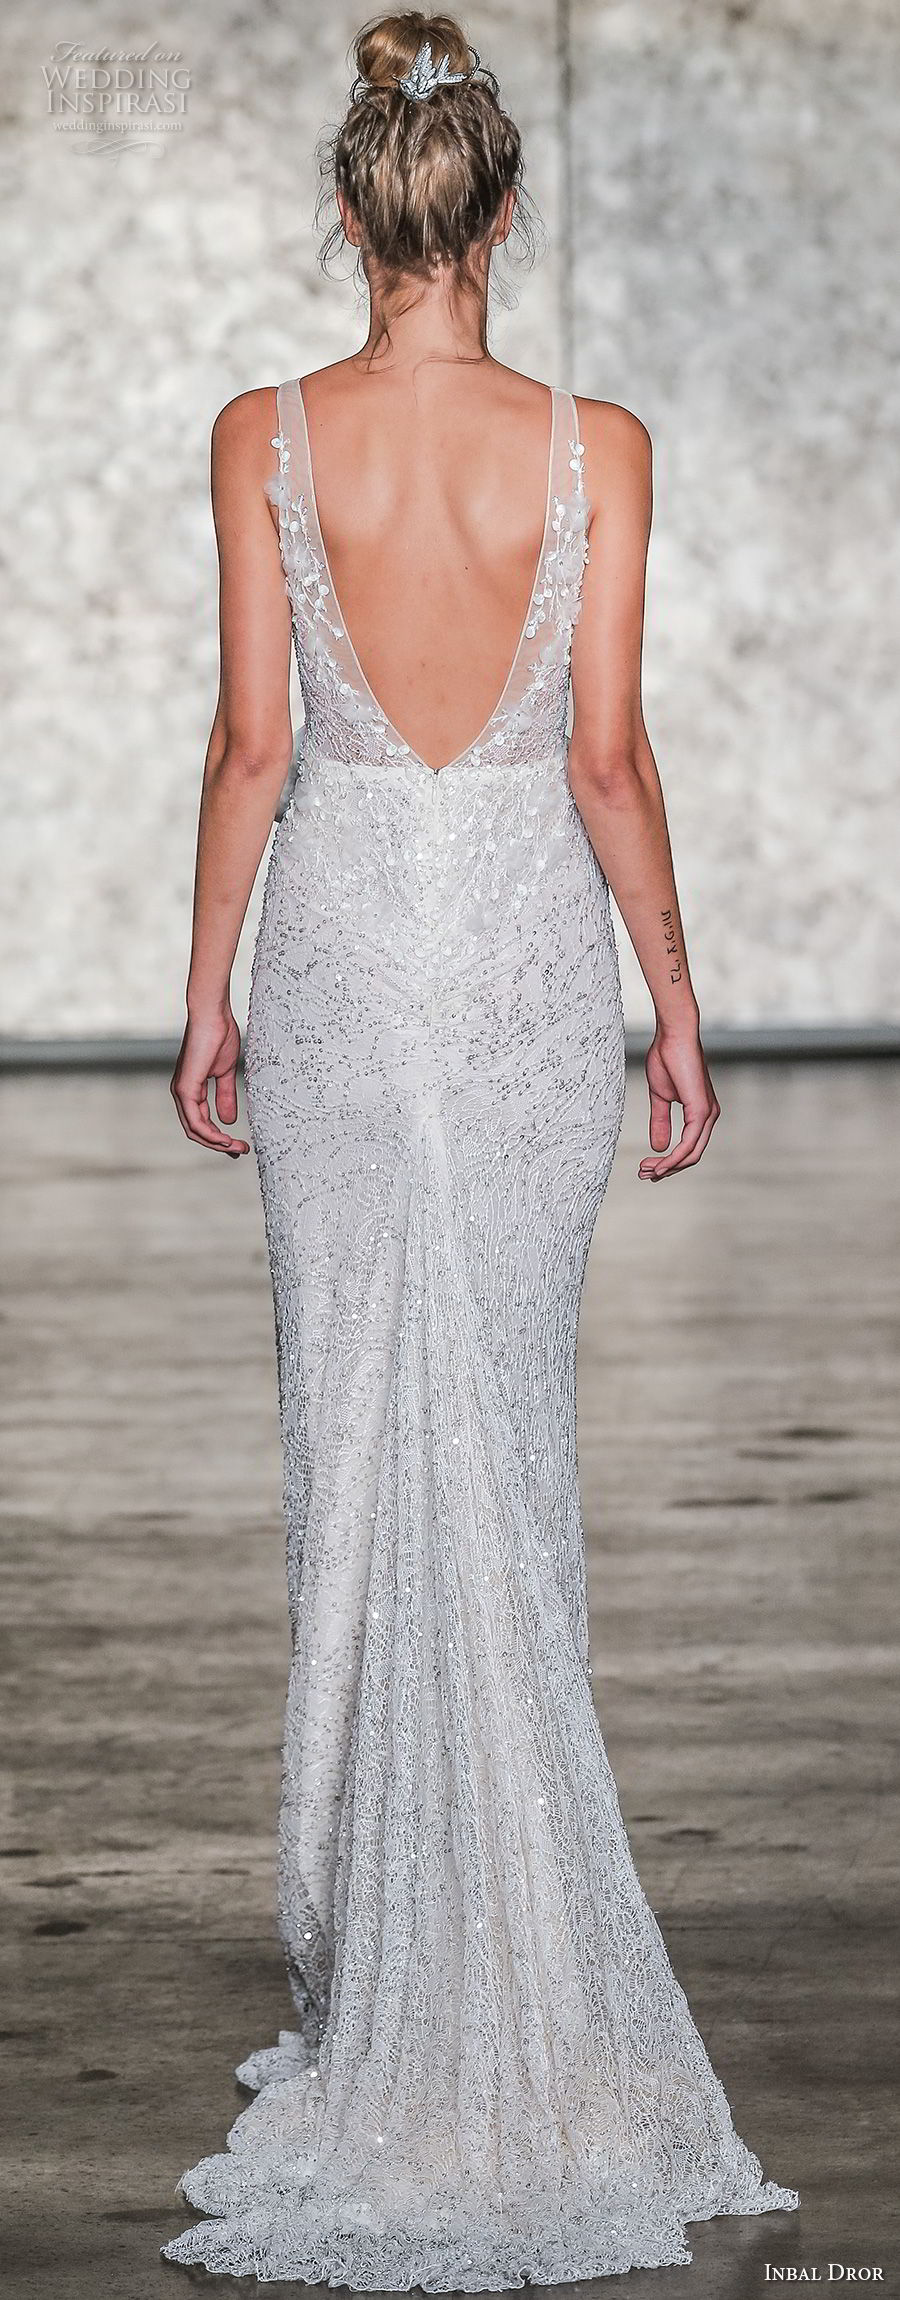 inbal dror fall 2018 bridal sleeveless deep v neck full embellishment elegant sheath wedding dress open v back sweep train (08) bv